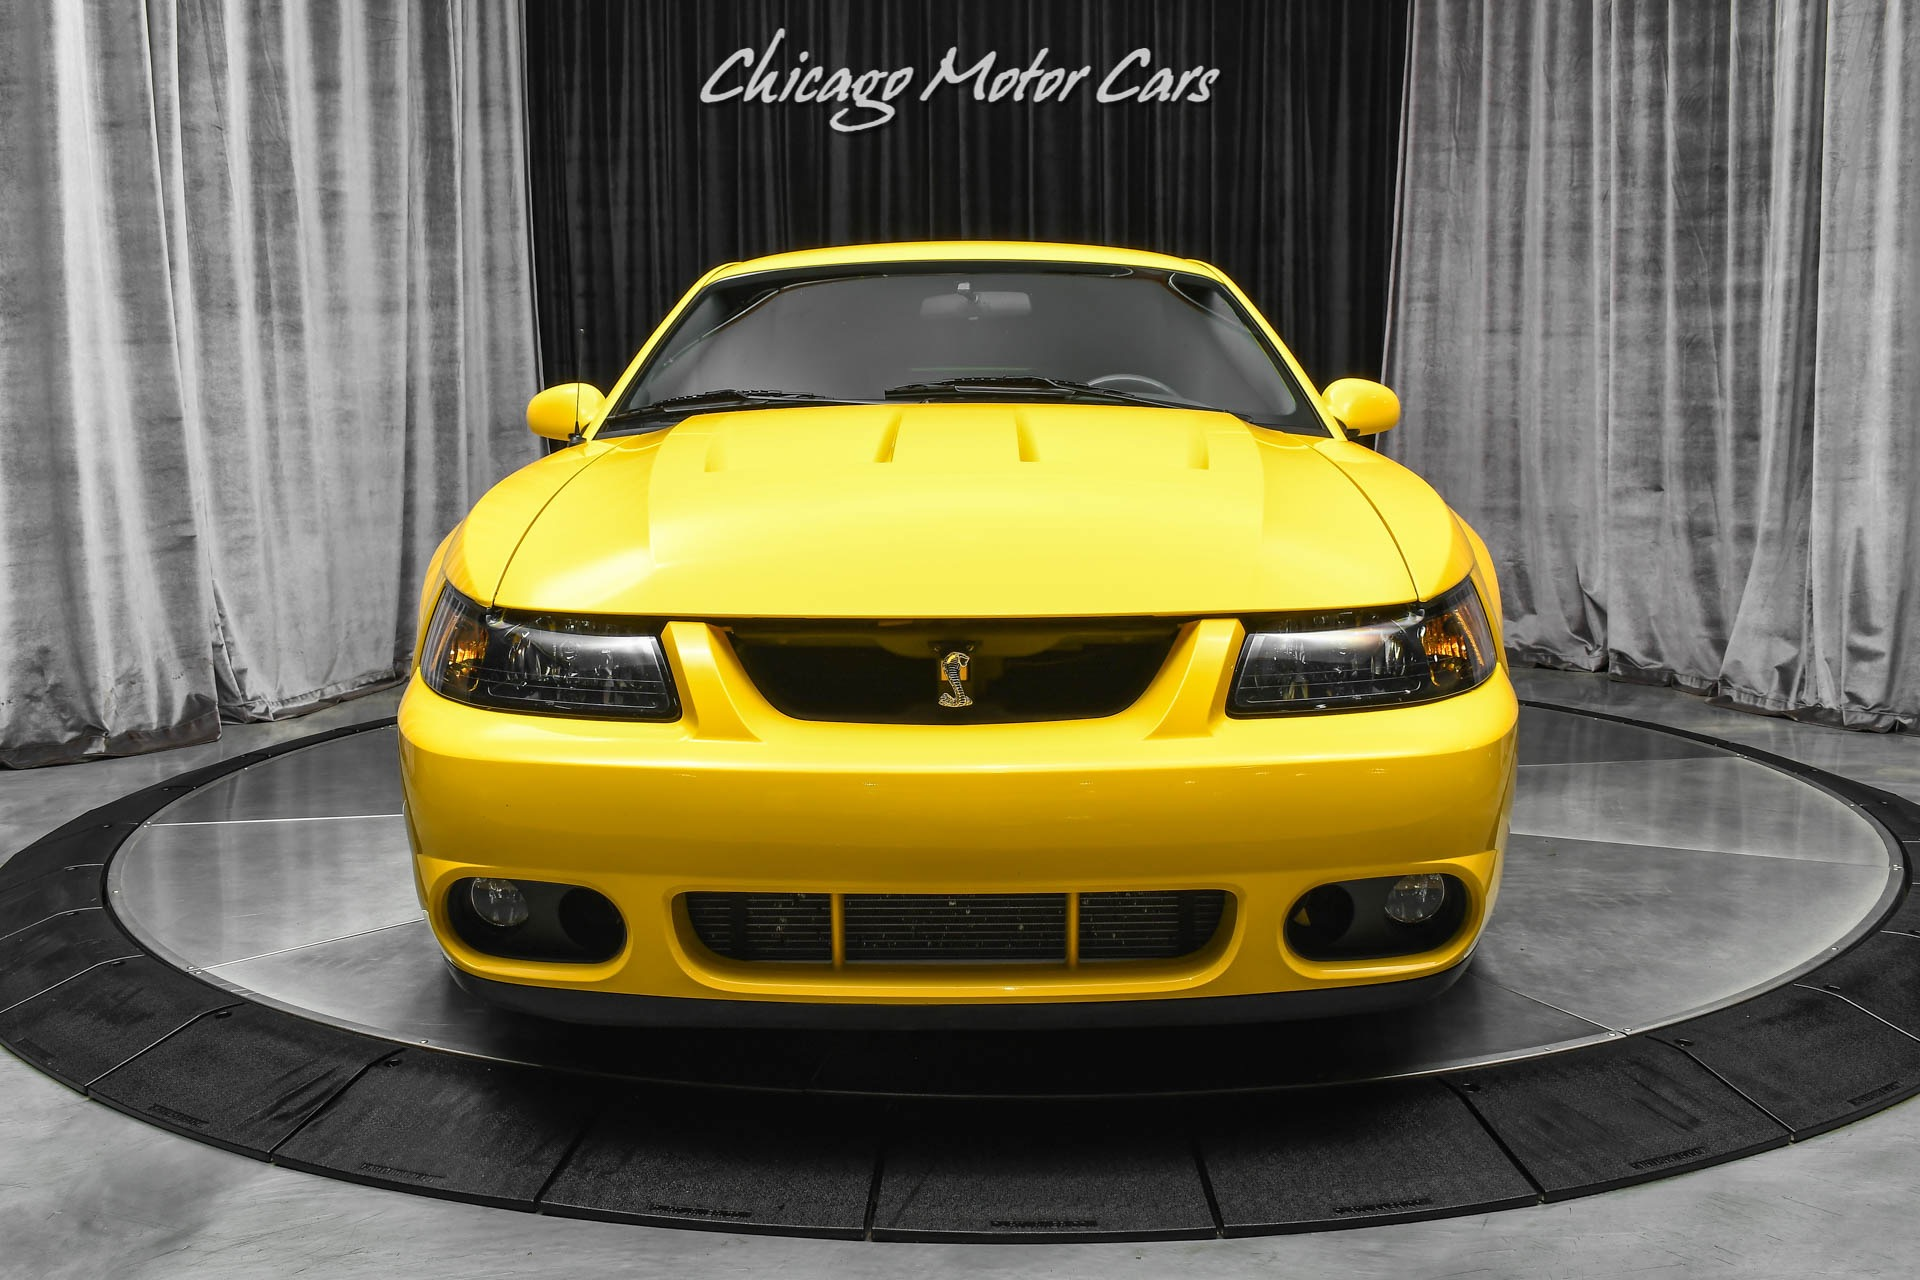 Used-2004-Ford-Mustang-SVT-Cobra-Coupe-SVT-ONLY-20K-MILES-TASTEFUL-MODS-COLLECTIBLE